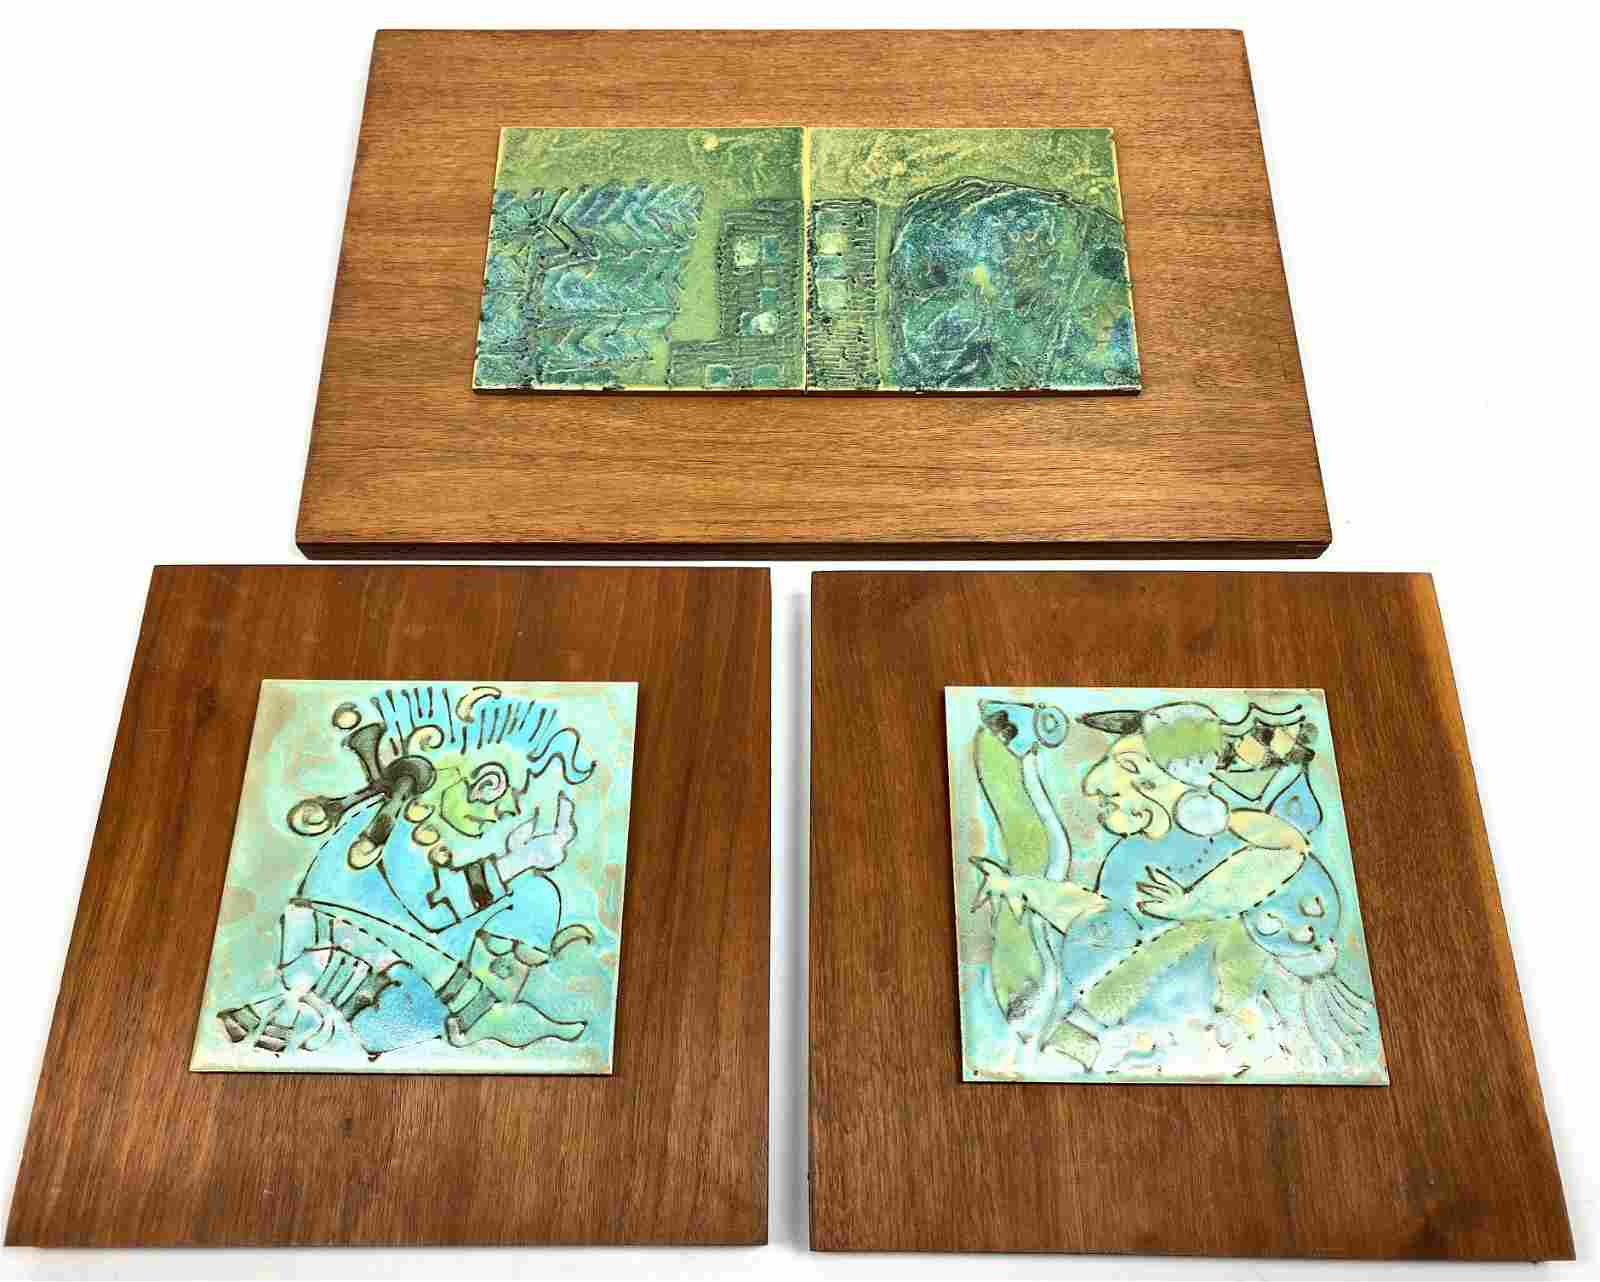 3pc Harris Strong attributed Glazed Ceramic Tiles Panel